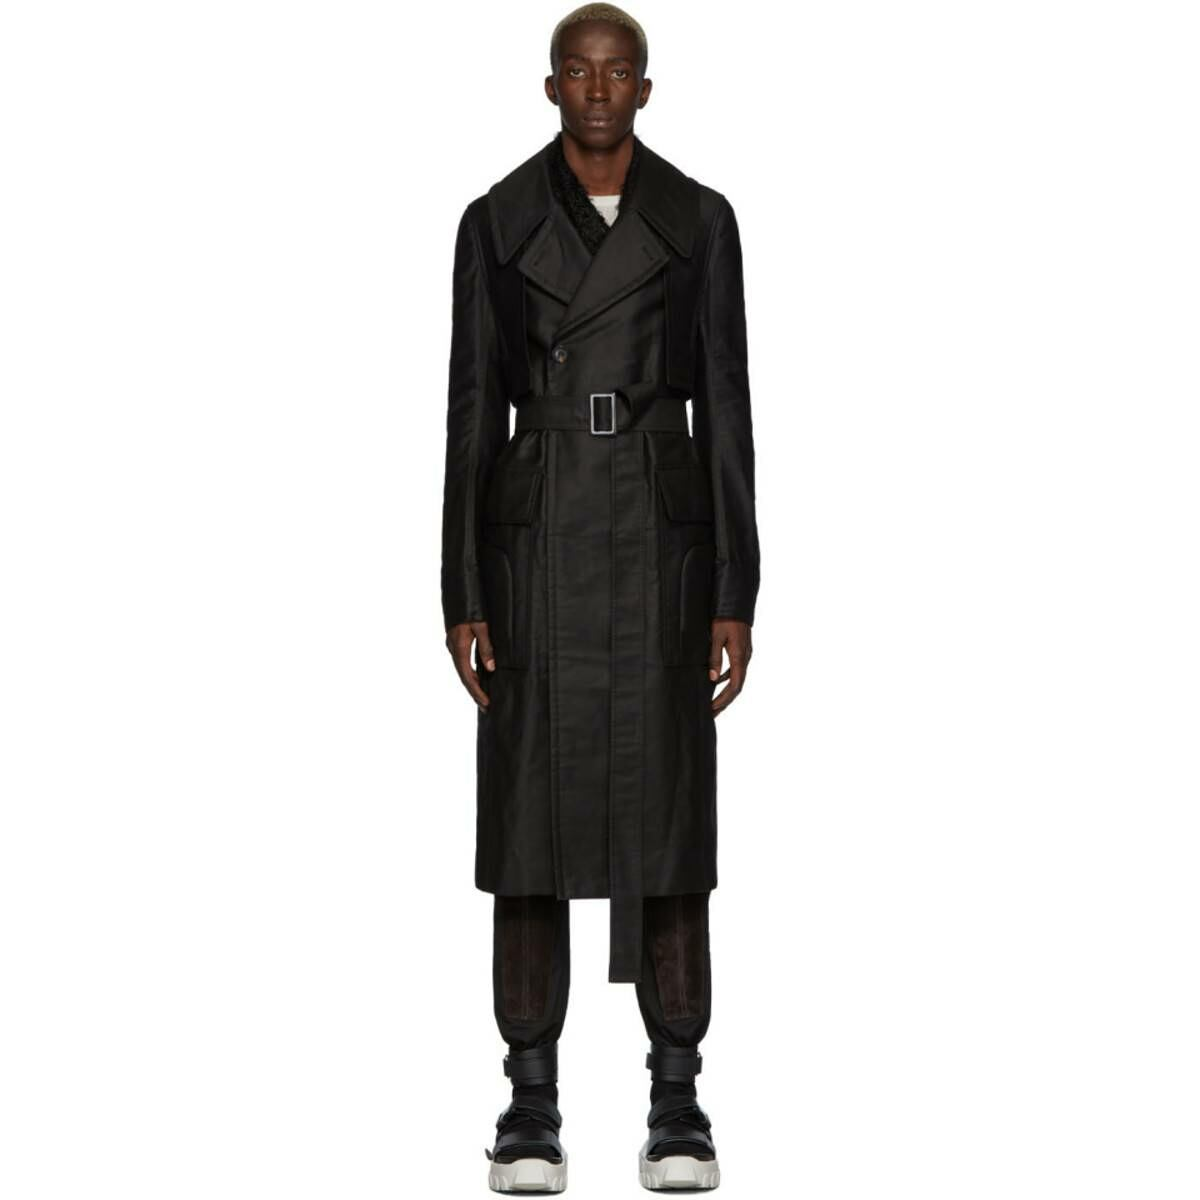 Rick Owens Black Drella Trench Coat Ssense USA MEN Men FASHION Mens COATS